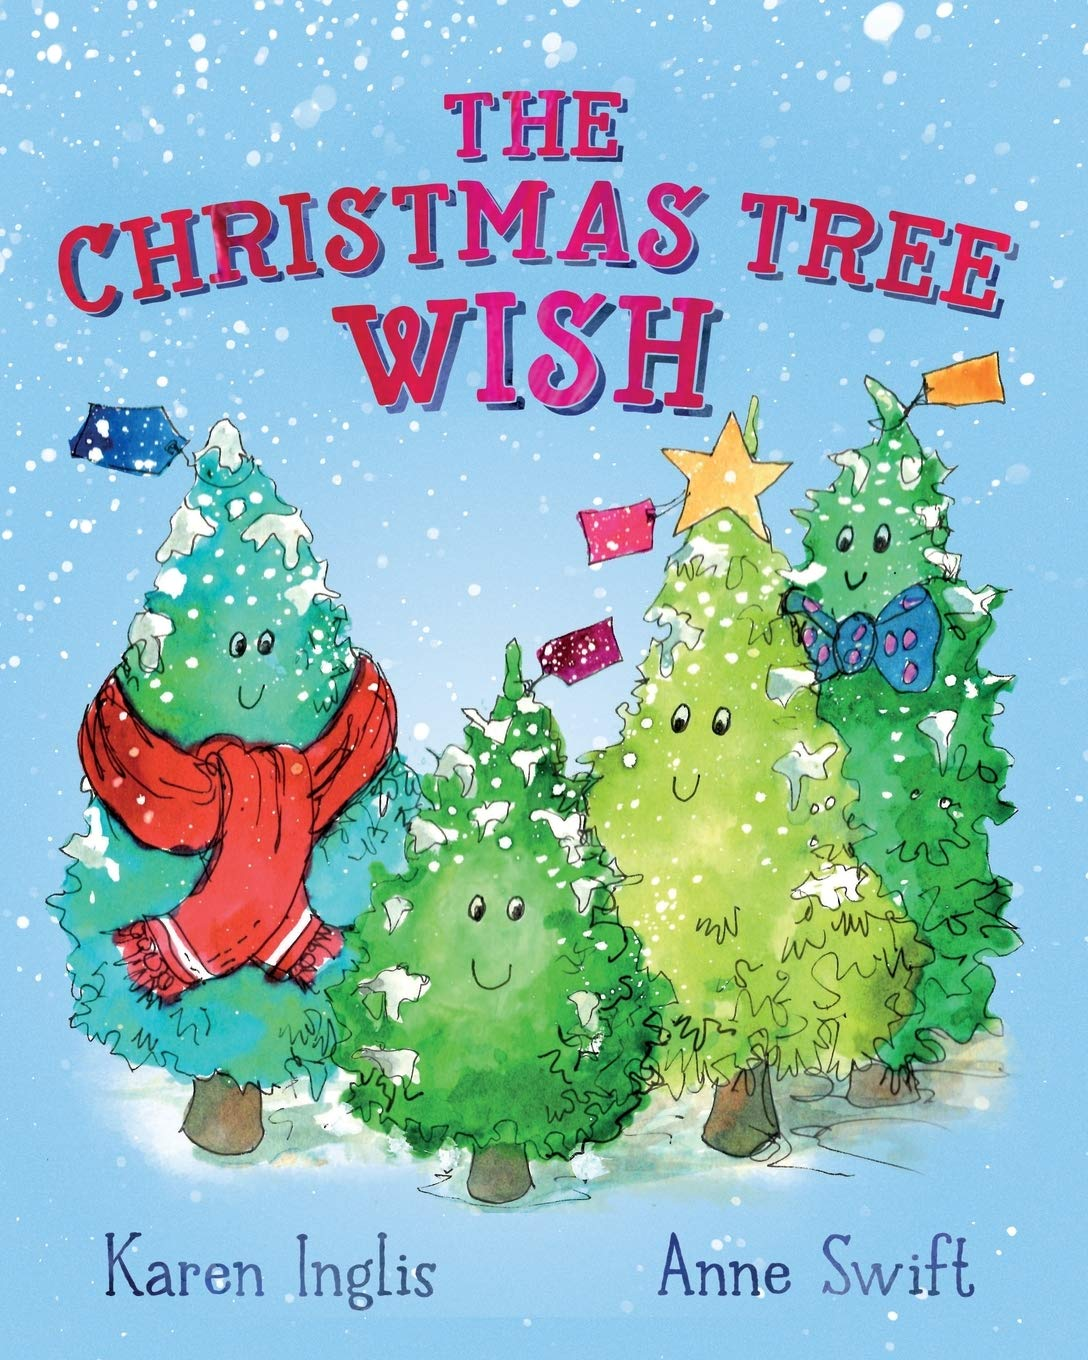 The Three Wishes from the Magical Love Bears: A Heart-warming Christmas Story of Kindness